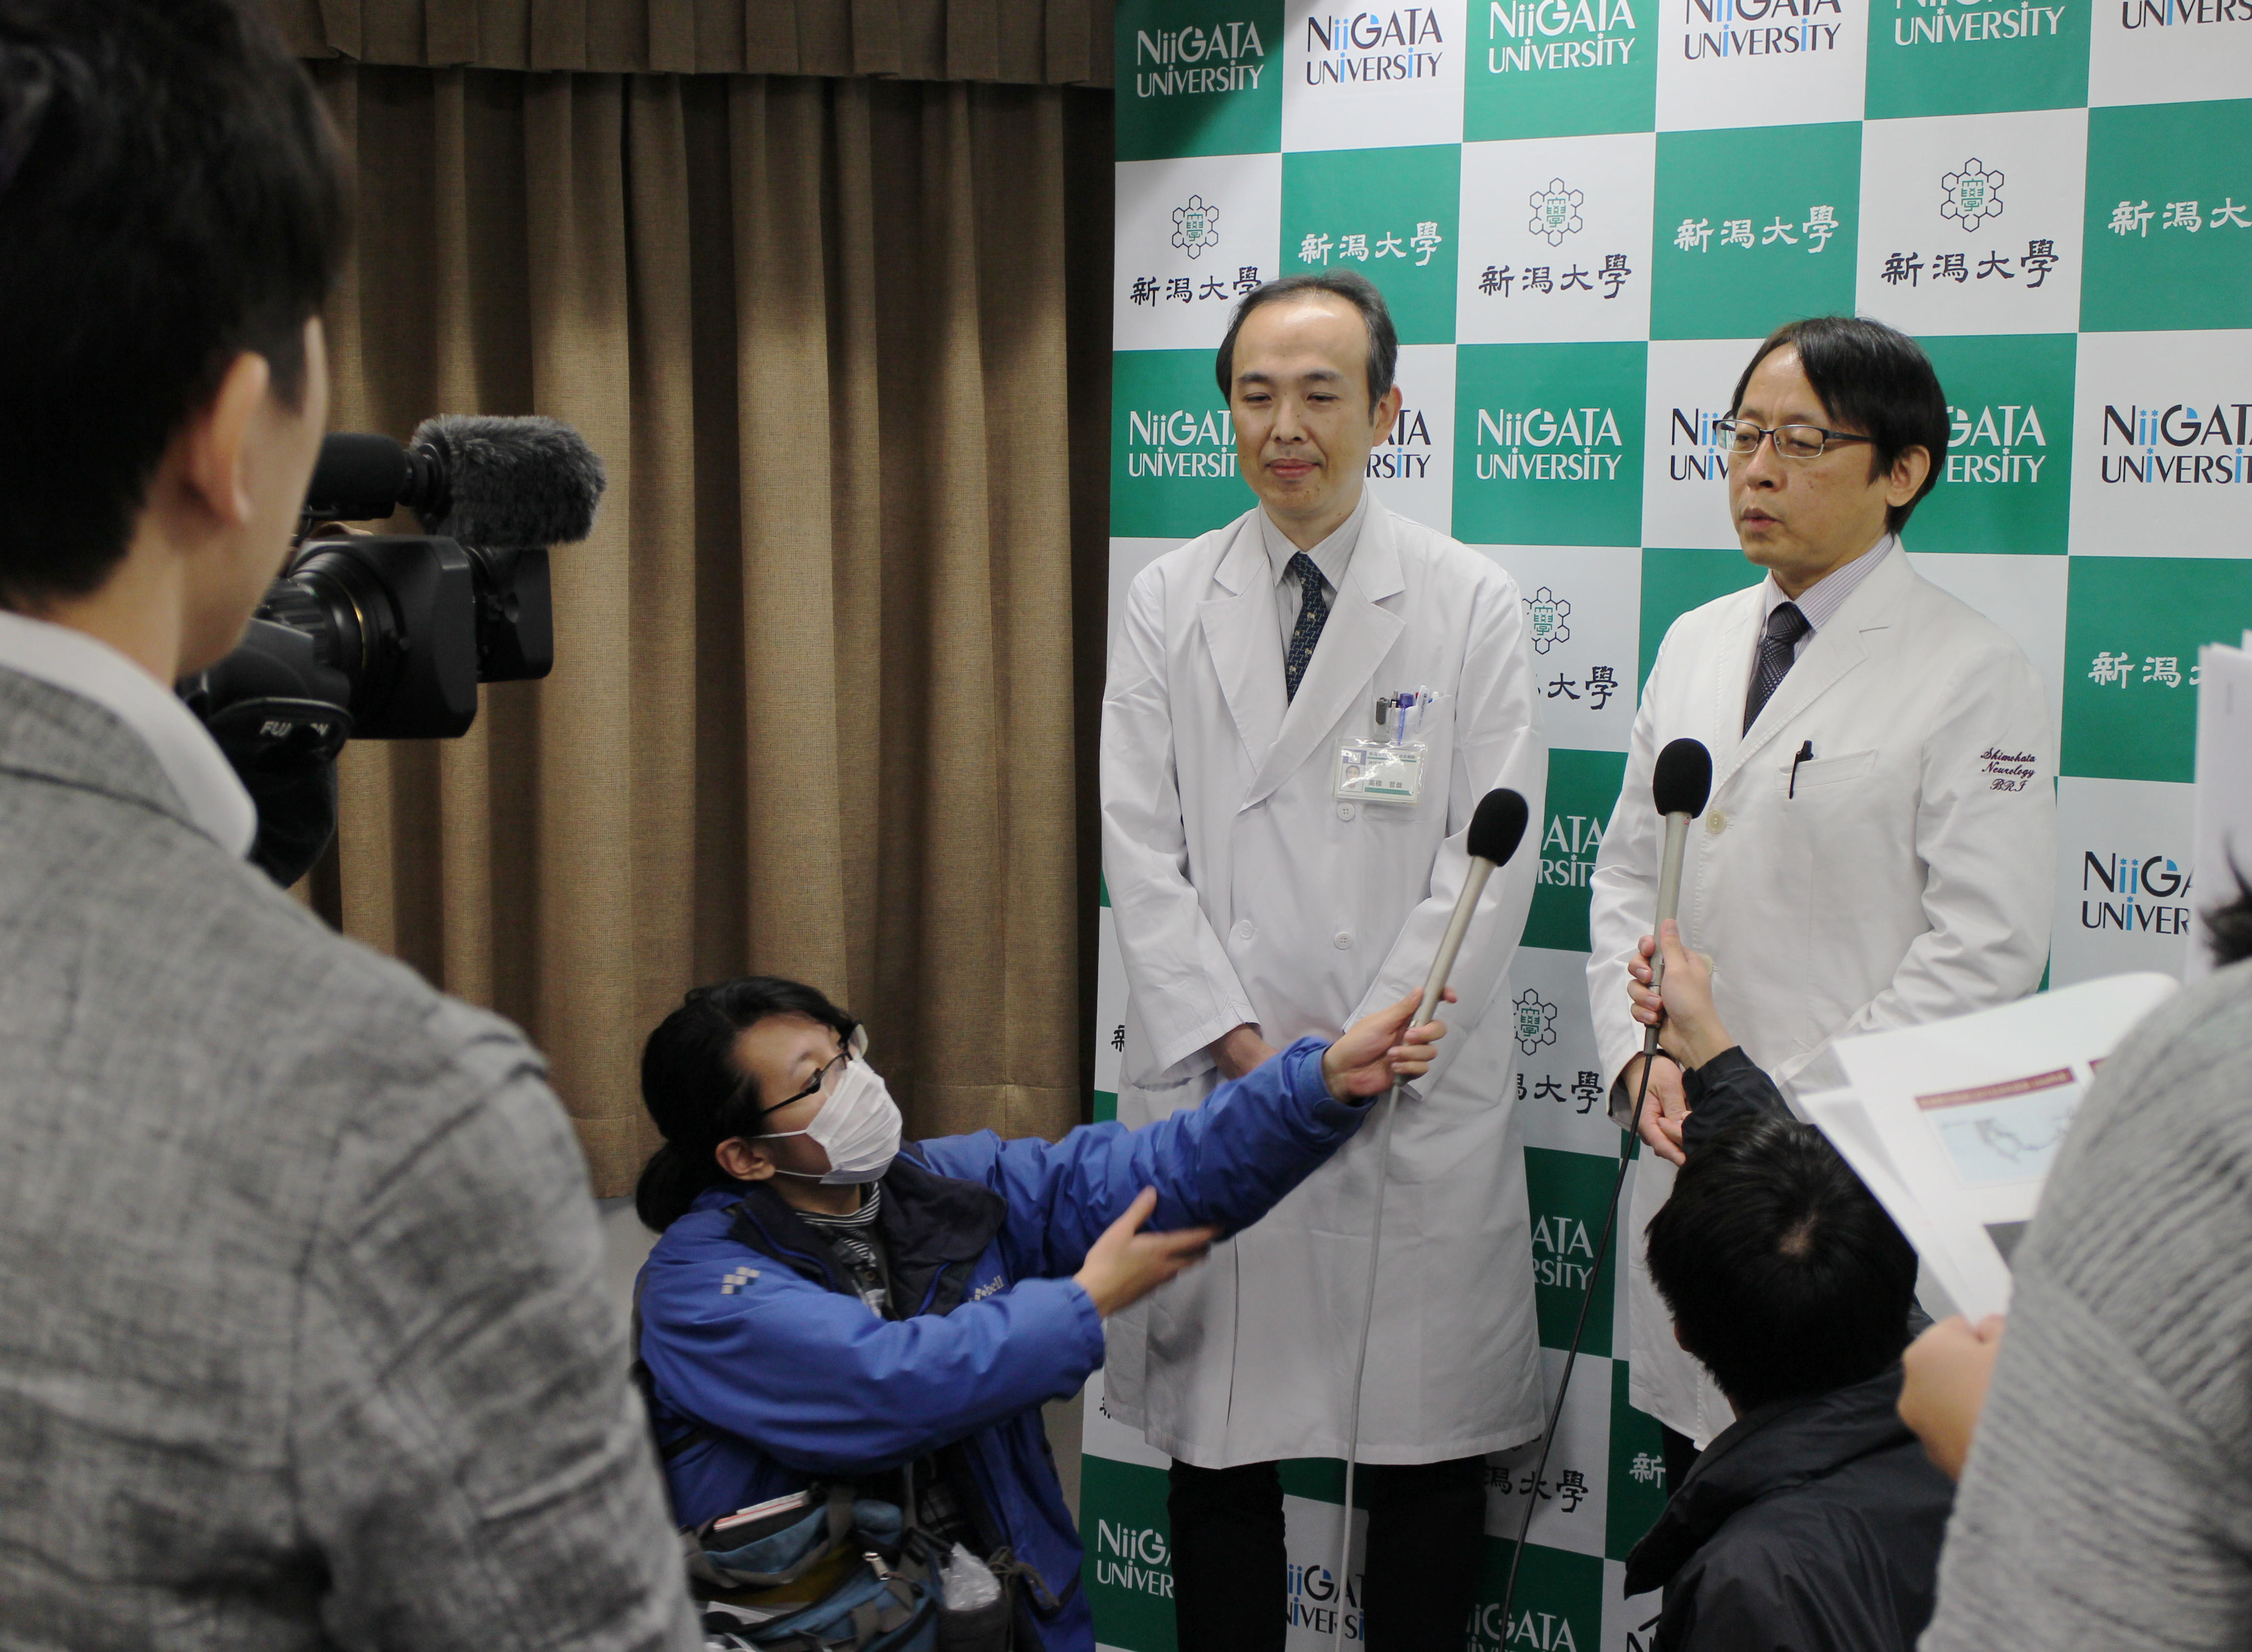 Press conference held for the research findings relating Minamata Disease